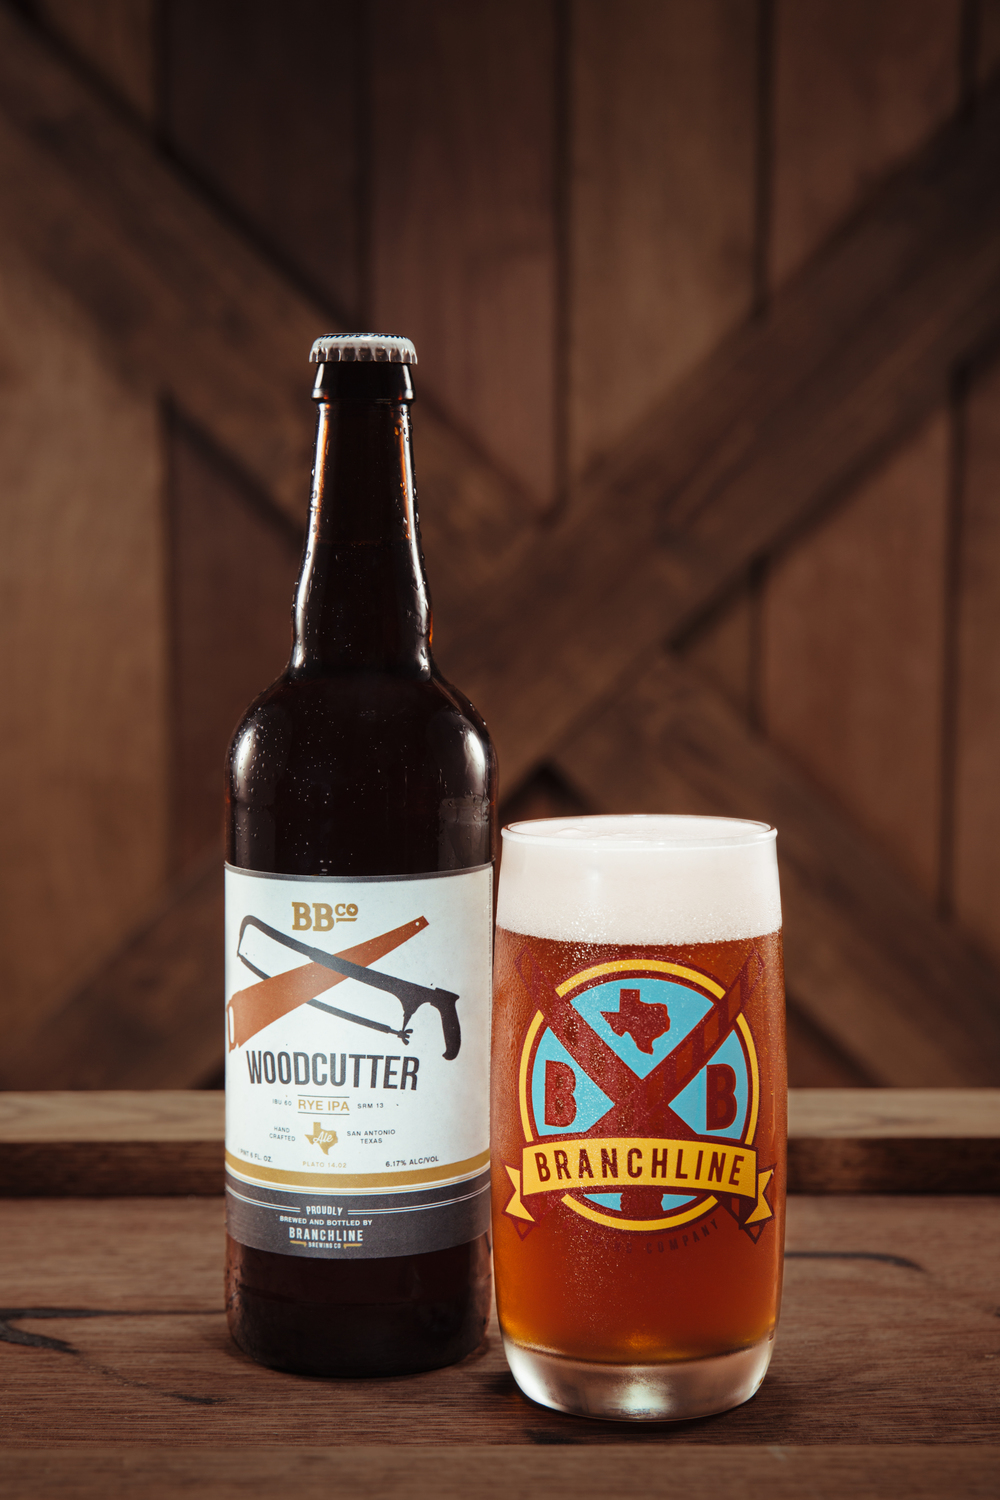 Woodcutter Rye IPA 22 oz Bottles available at select locations around San Antonio and Austin.